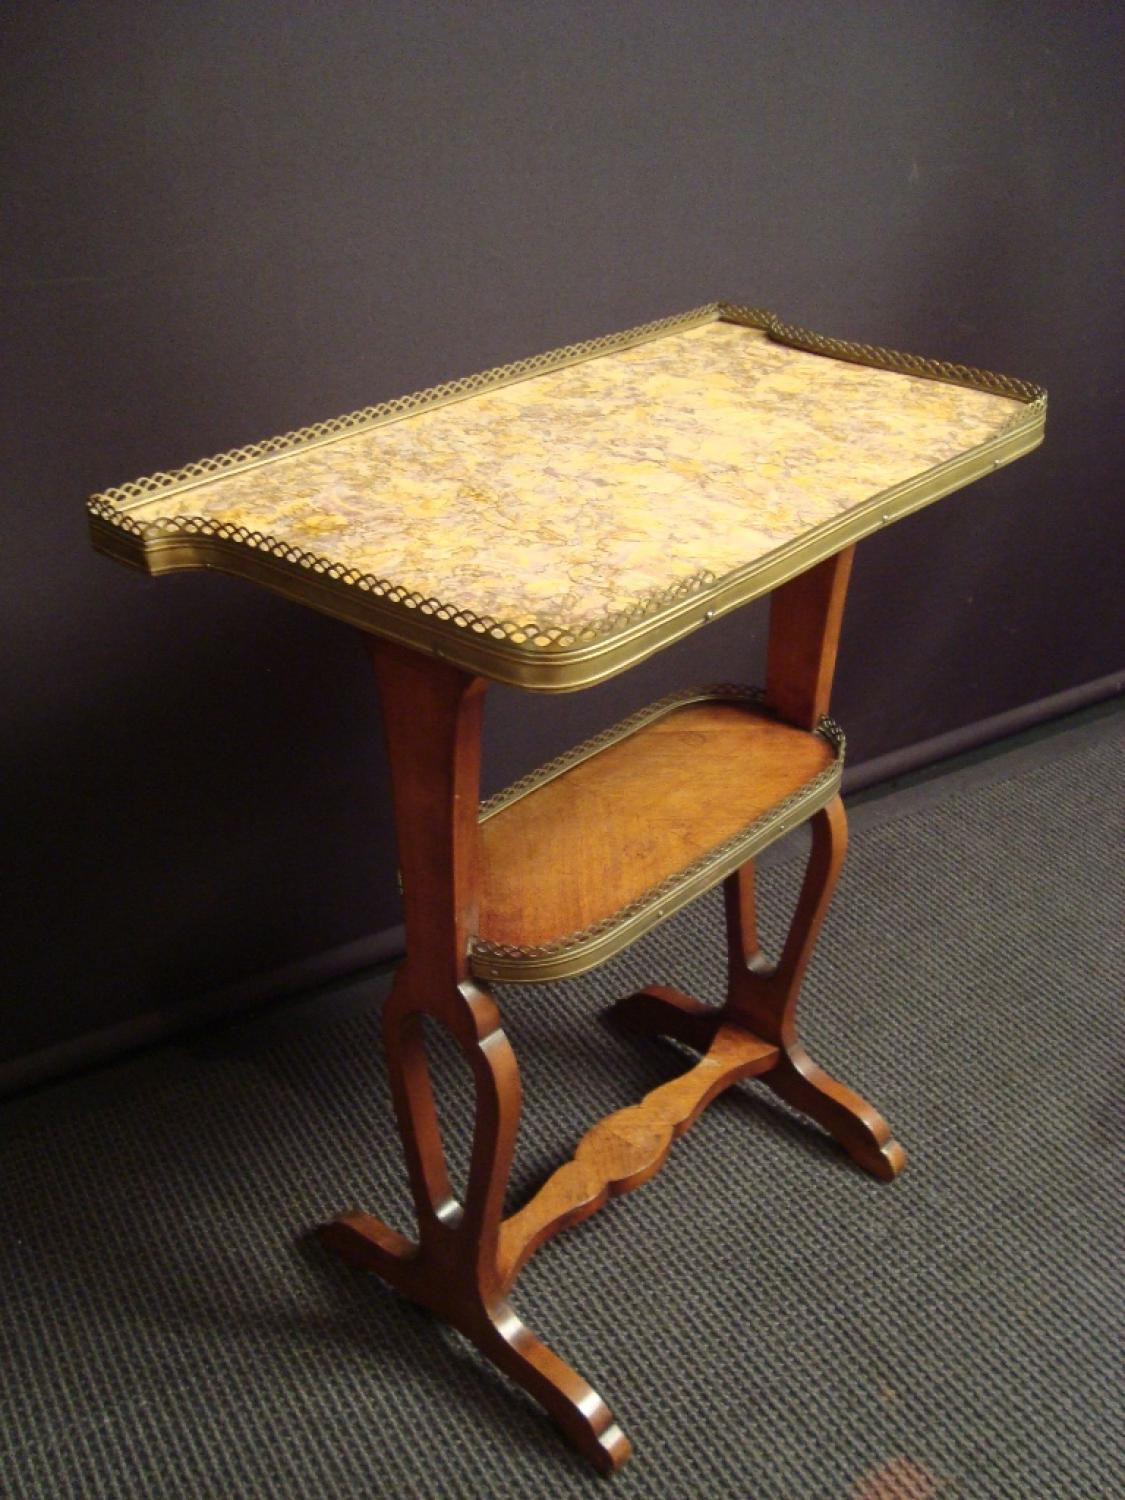 A marble topped kingwood veneered work table